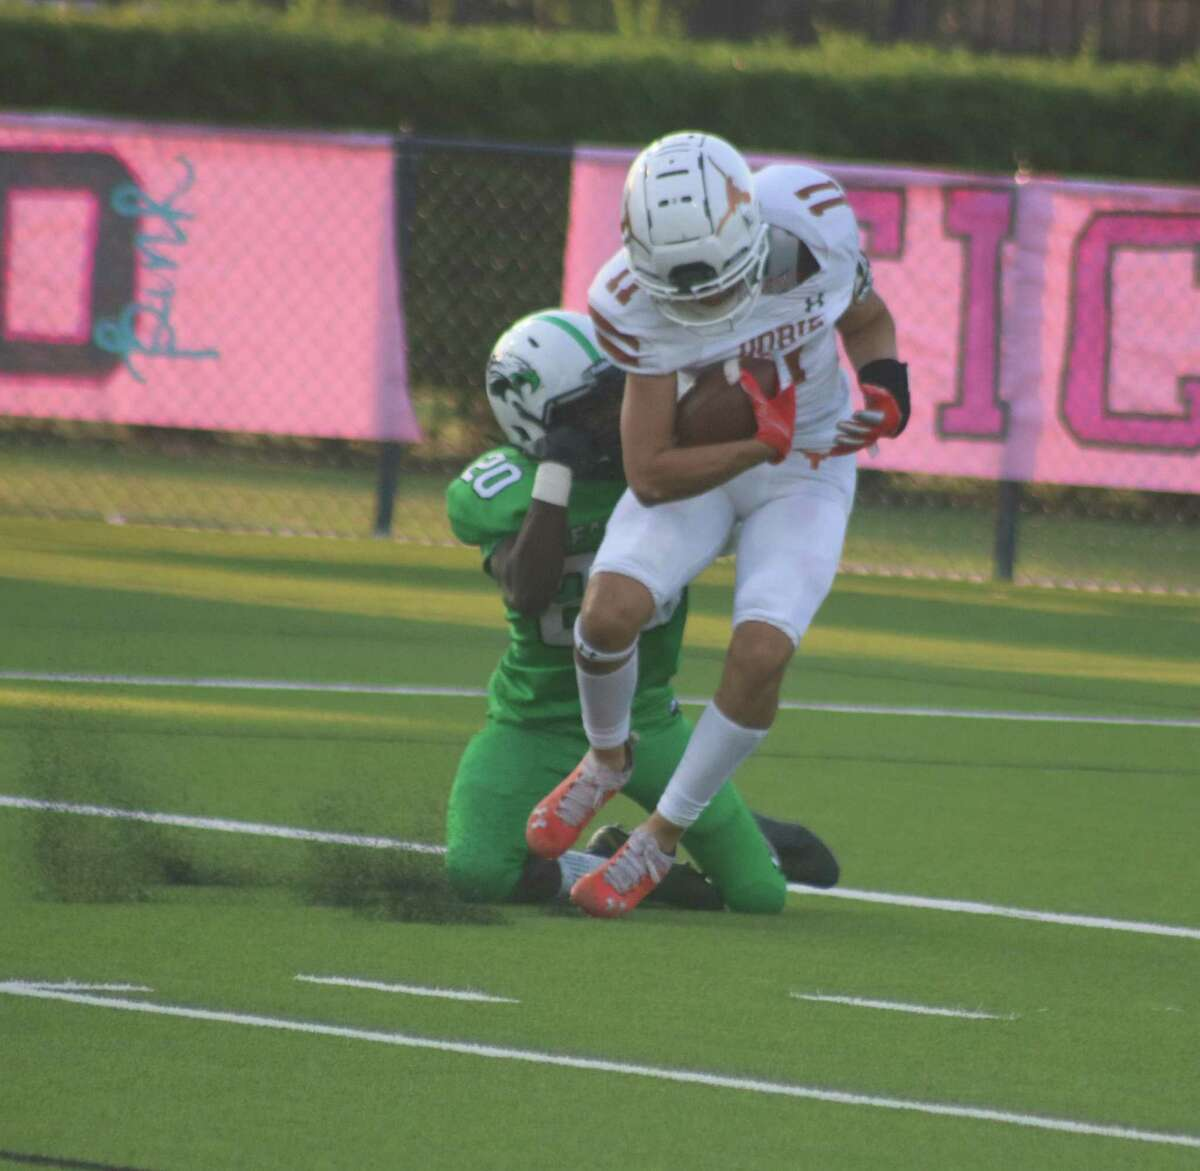 Dobie's Joshua Rodriguez gets dragged into the end zone for a score after a pass completion. That's not what the Longhorns like best, but they've got the receivers to give them another layer of weapons.